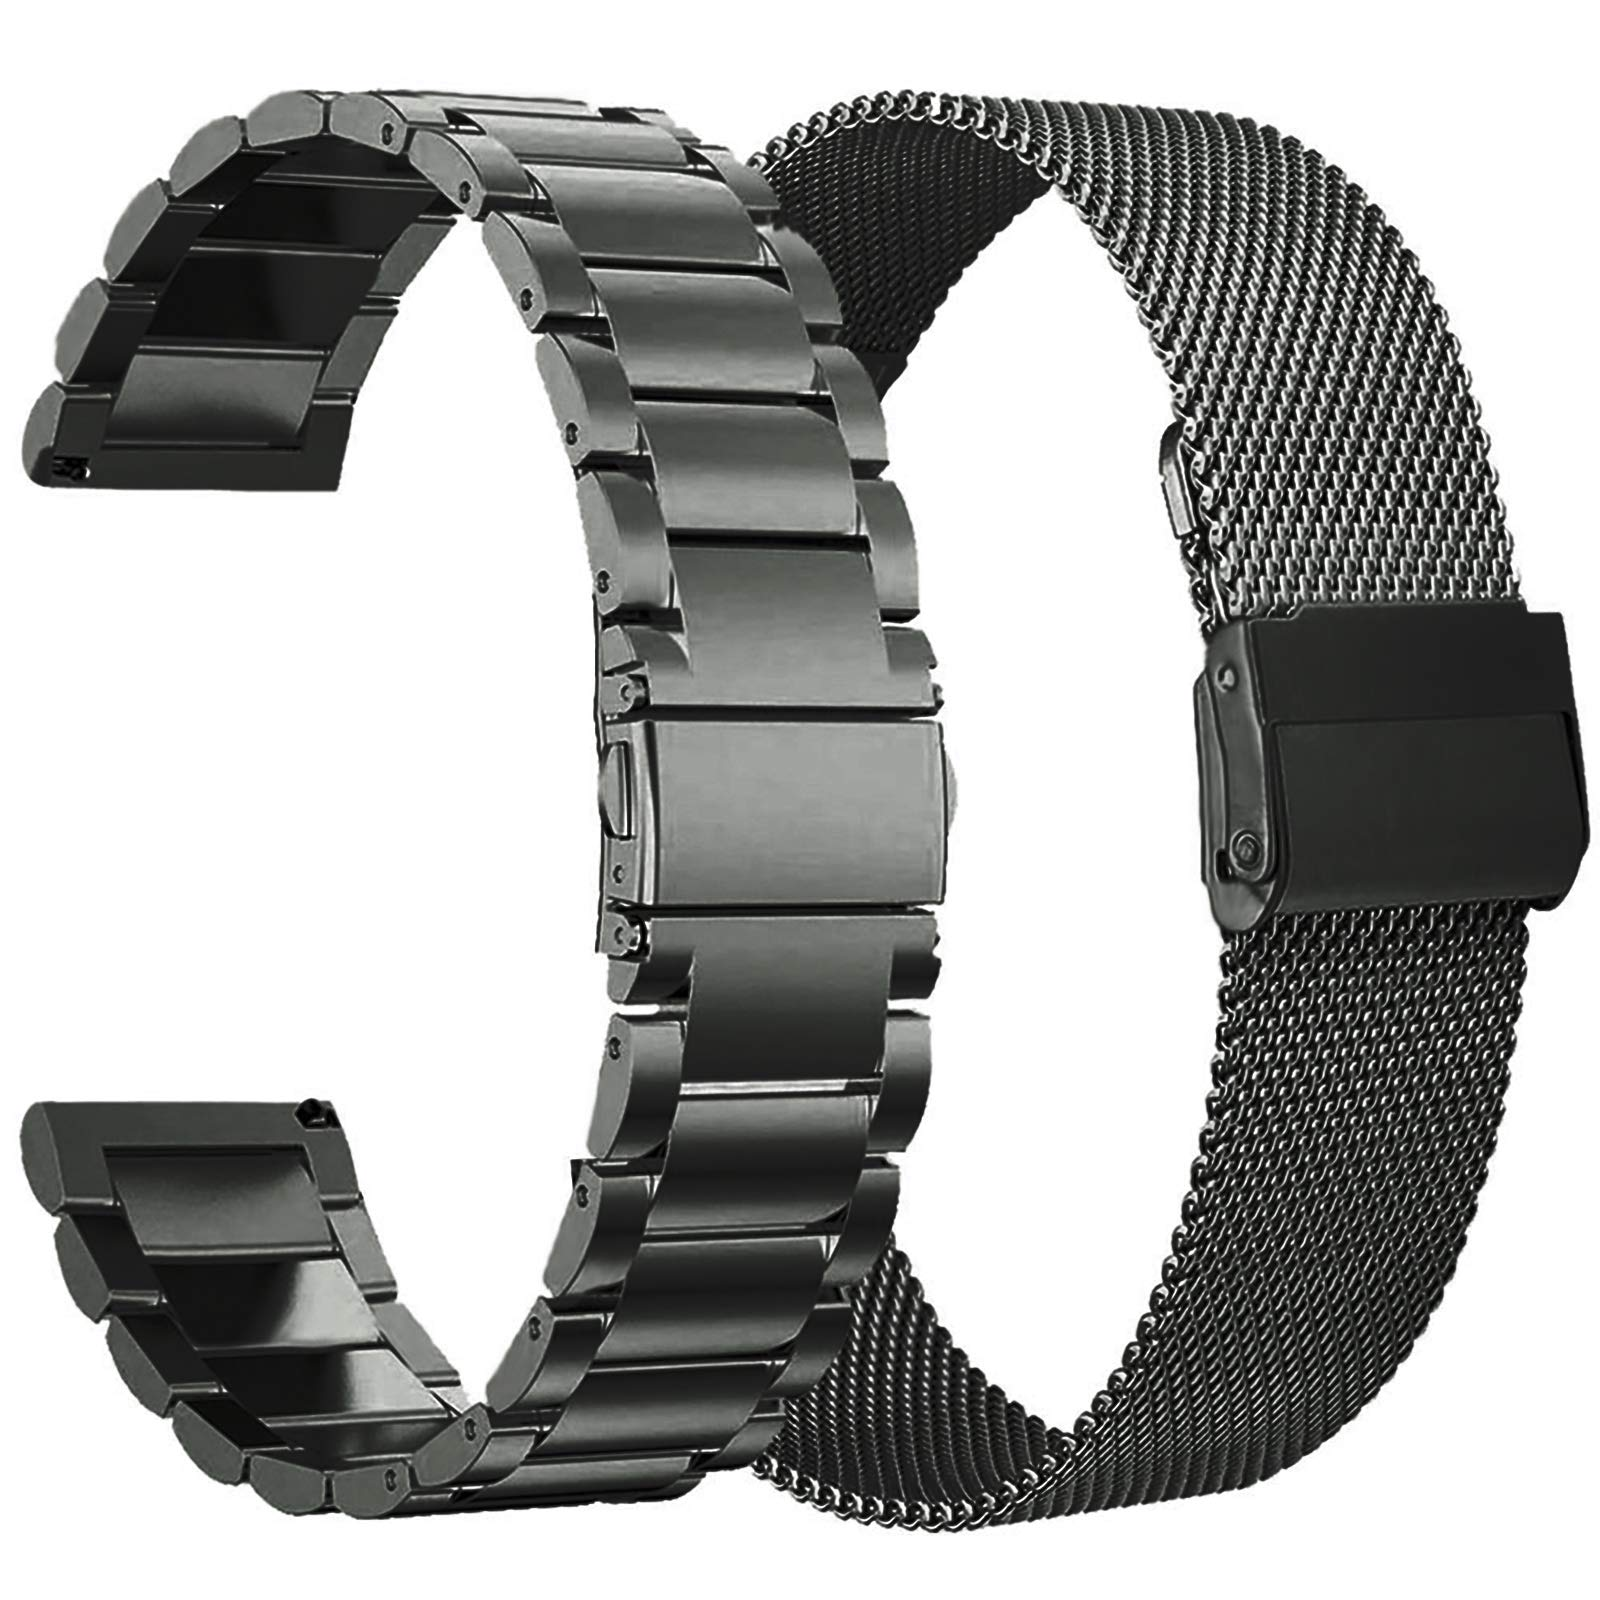 Koreda Compatible with Samsung Galaxy Watch 42mm/Galaxy Watch 3 41mm/Active 40mm/Active 2 40mm 44mm Bands Sets, 20mm Stainless Steel Metal Band + Mesh Loop Replacement Bracelet Strap for Gear Sport